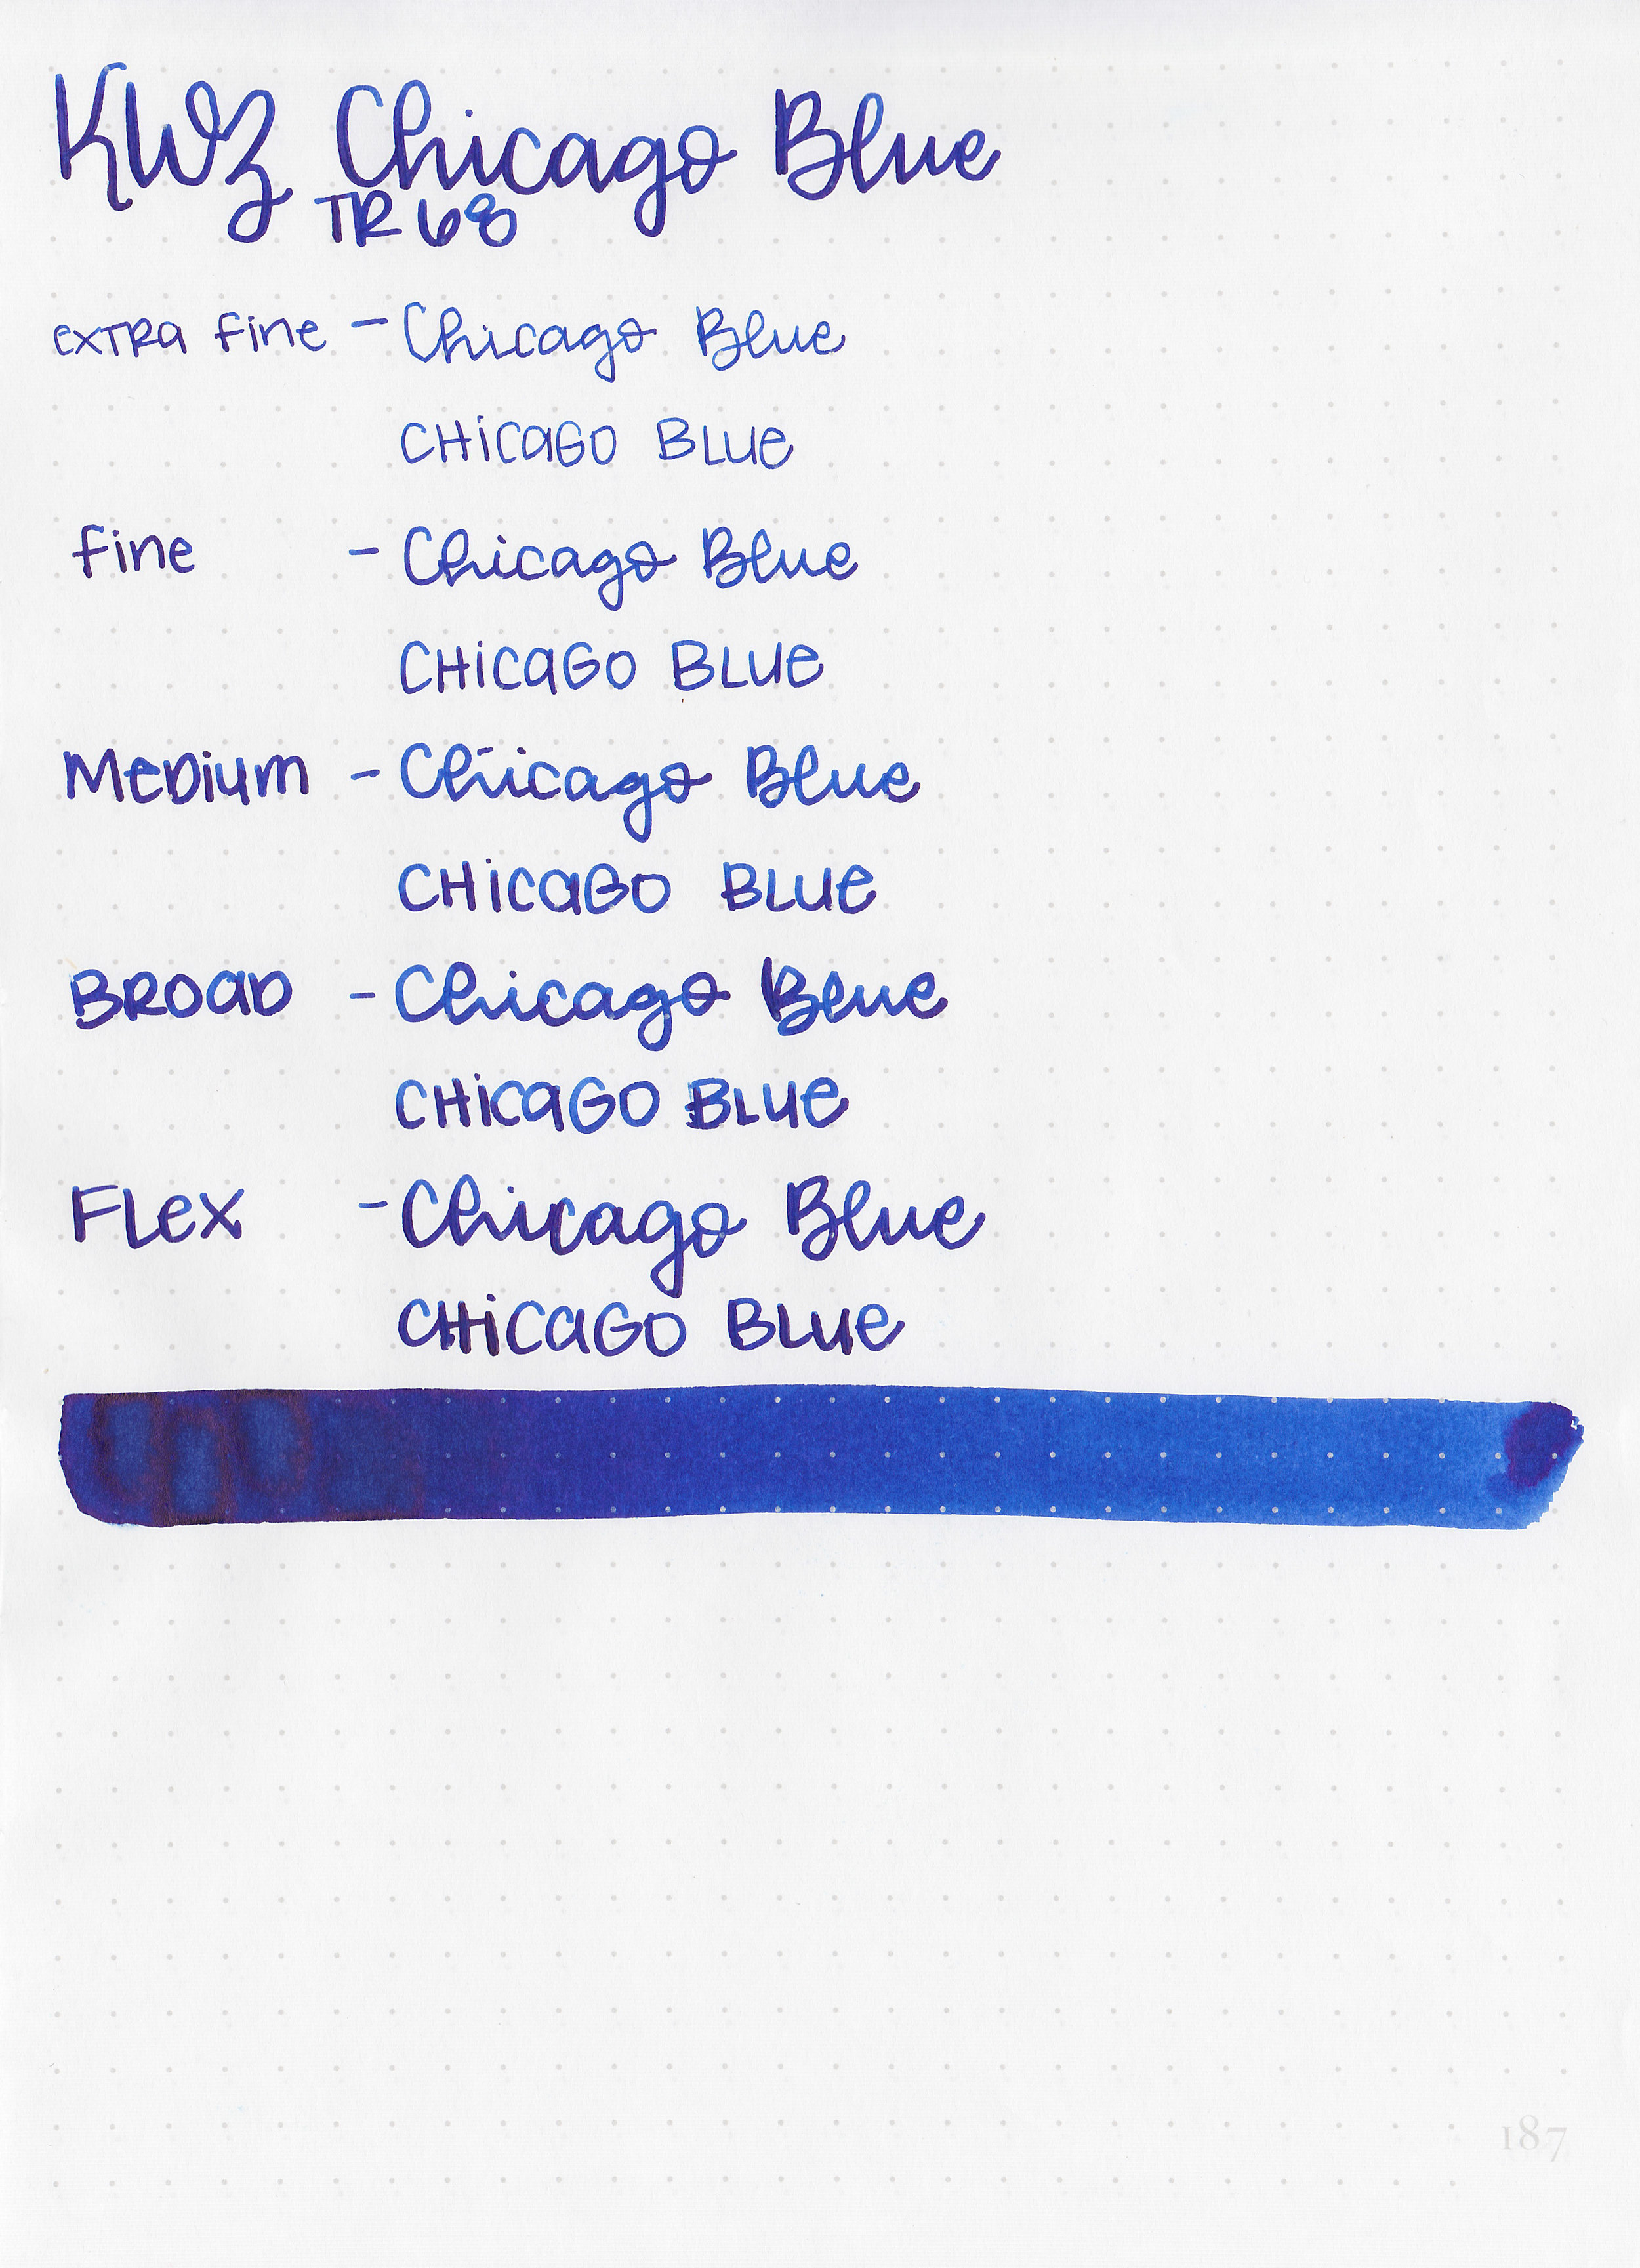 kwz-chicago-blue-7.jpg